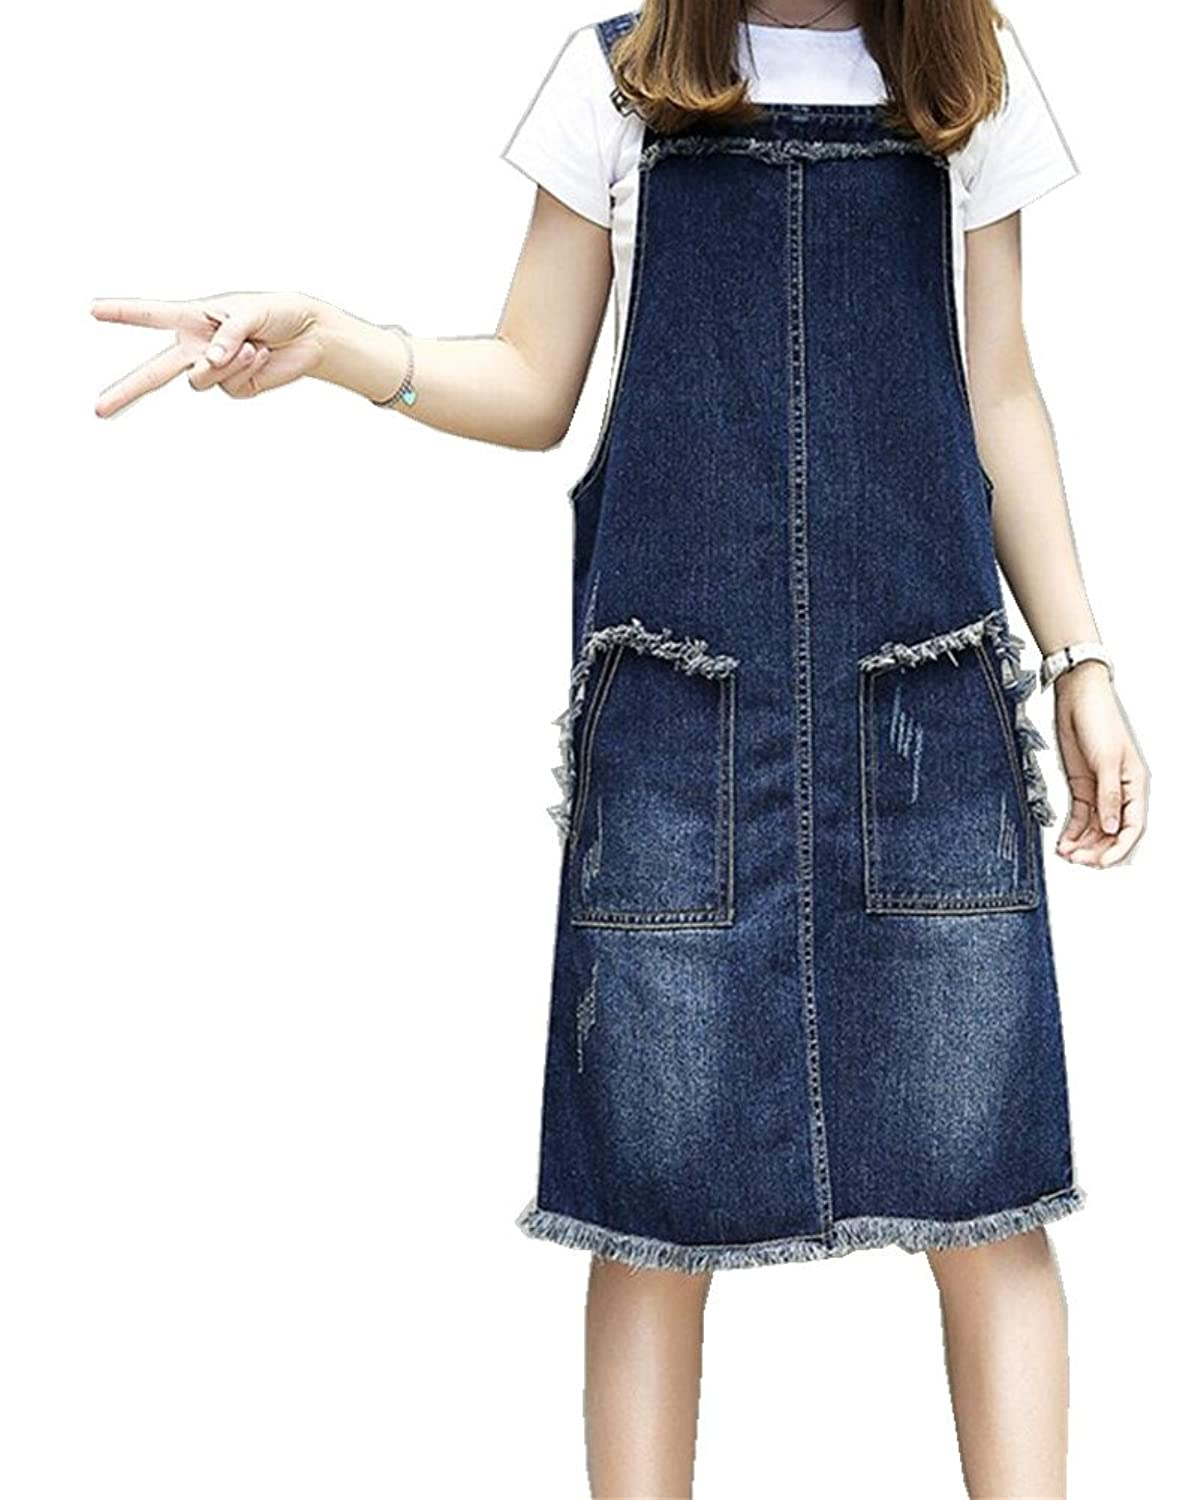 ACE SHOCK Women's Casual Knee Length Denim Suspender Skirt Overalls Dresses Jeans